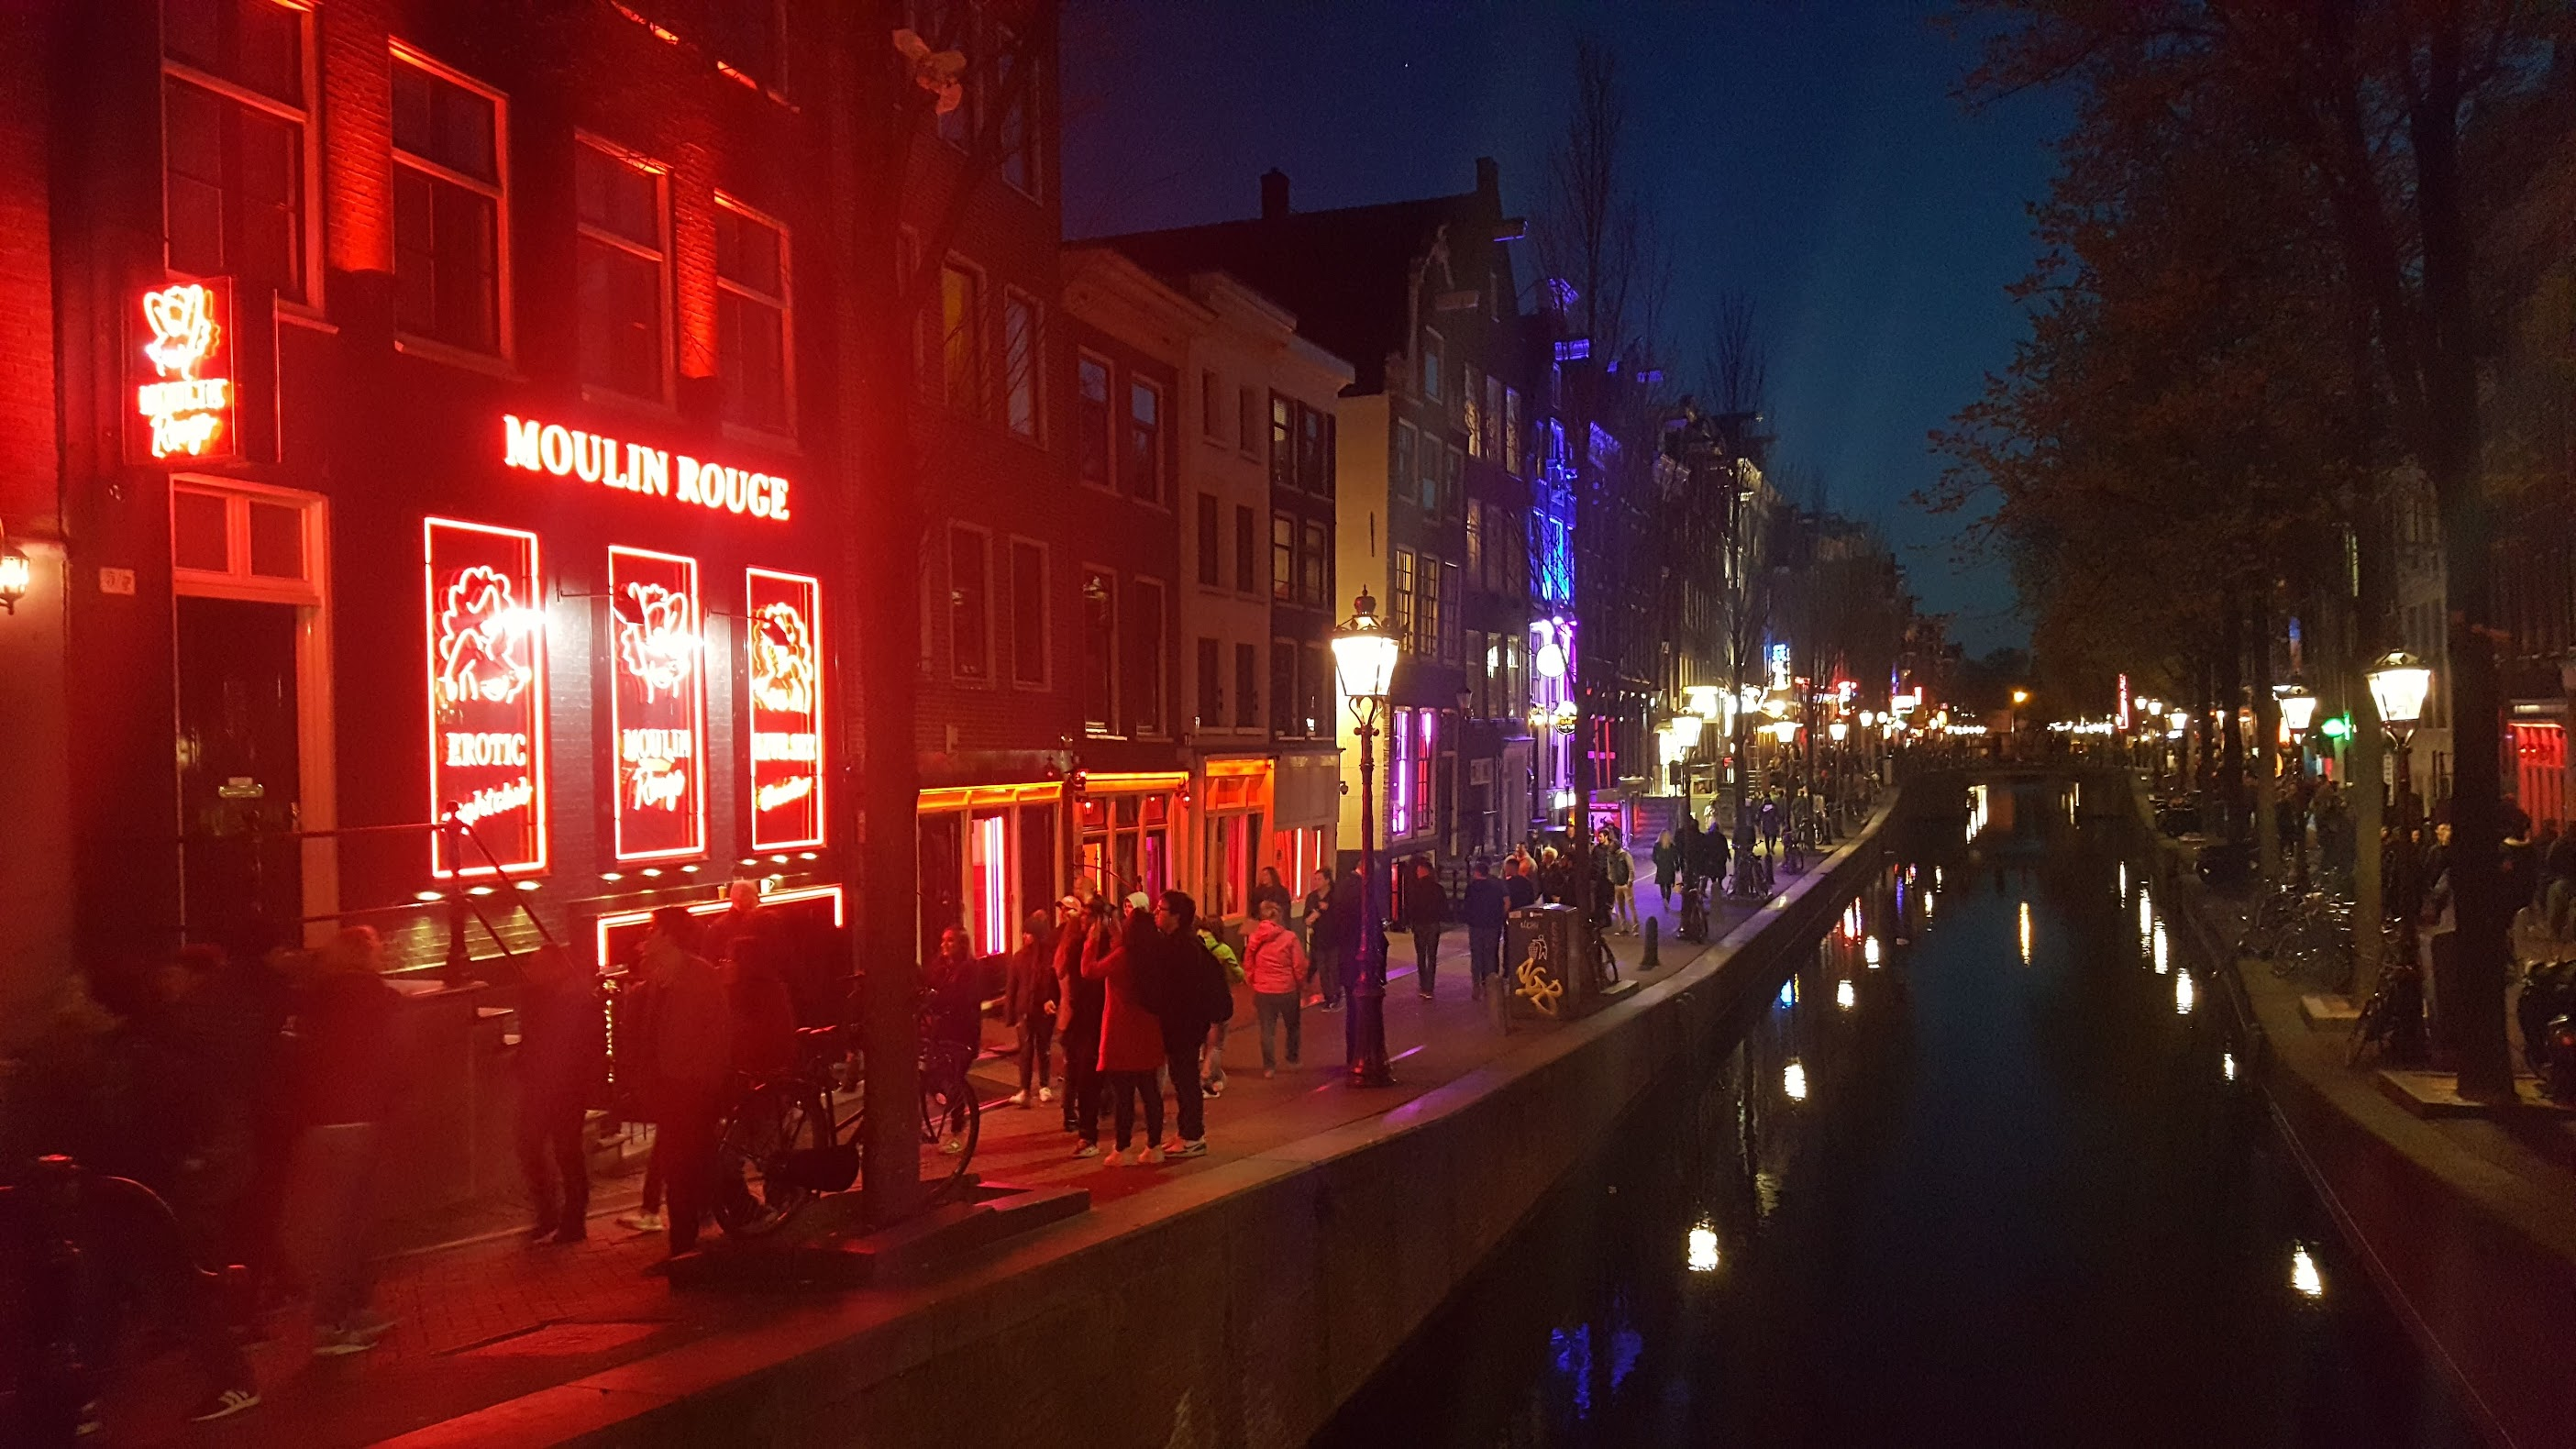 The Red Light District Amsterdam